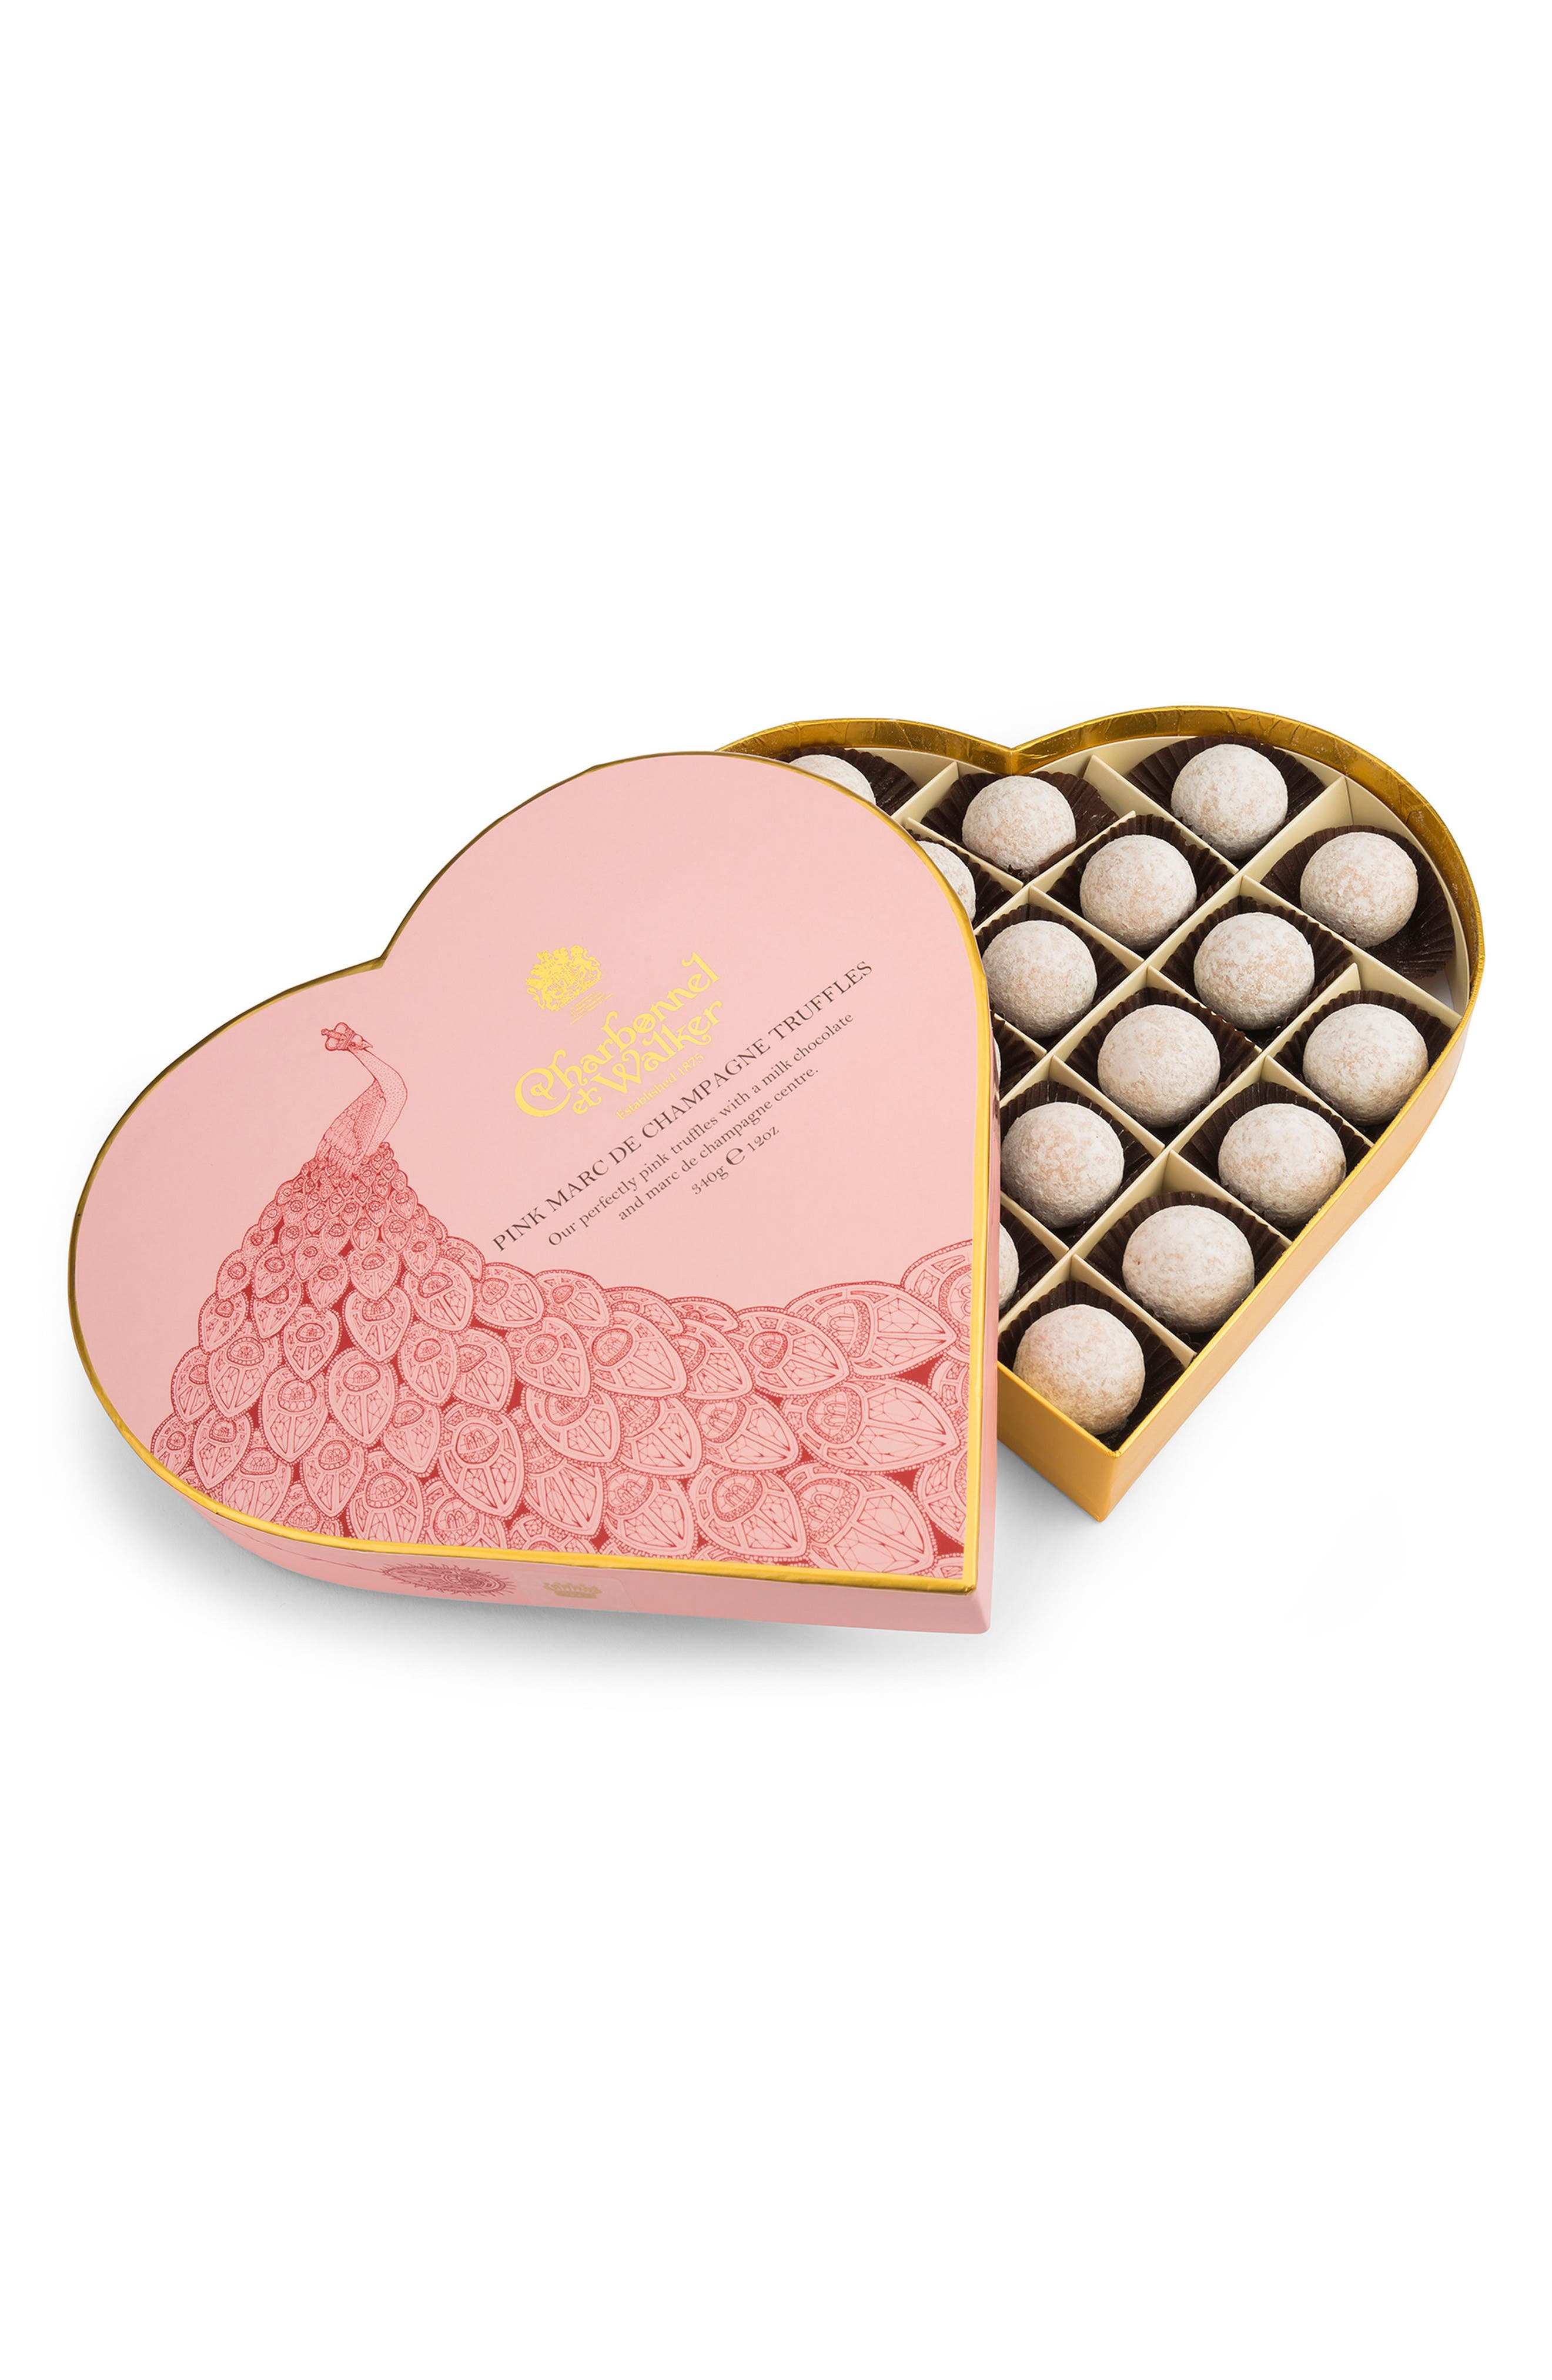 Marc de Champagne Chocolates in Heart Shaped Gift Box,                             Main thumbnail 1, color,